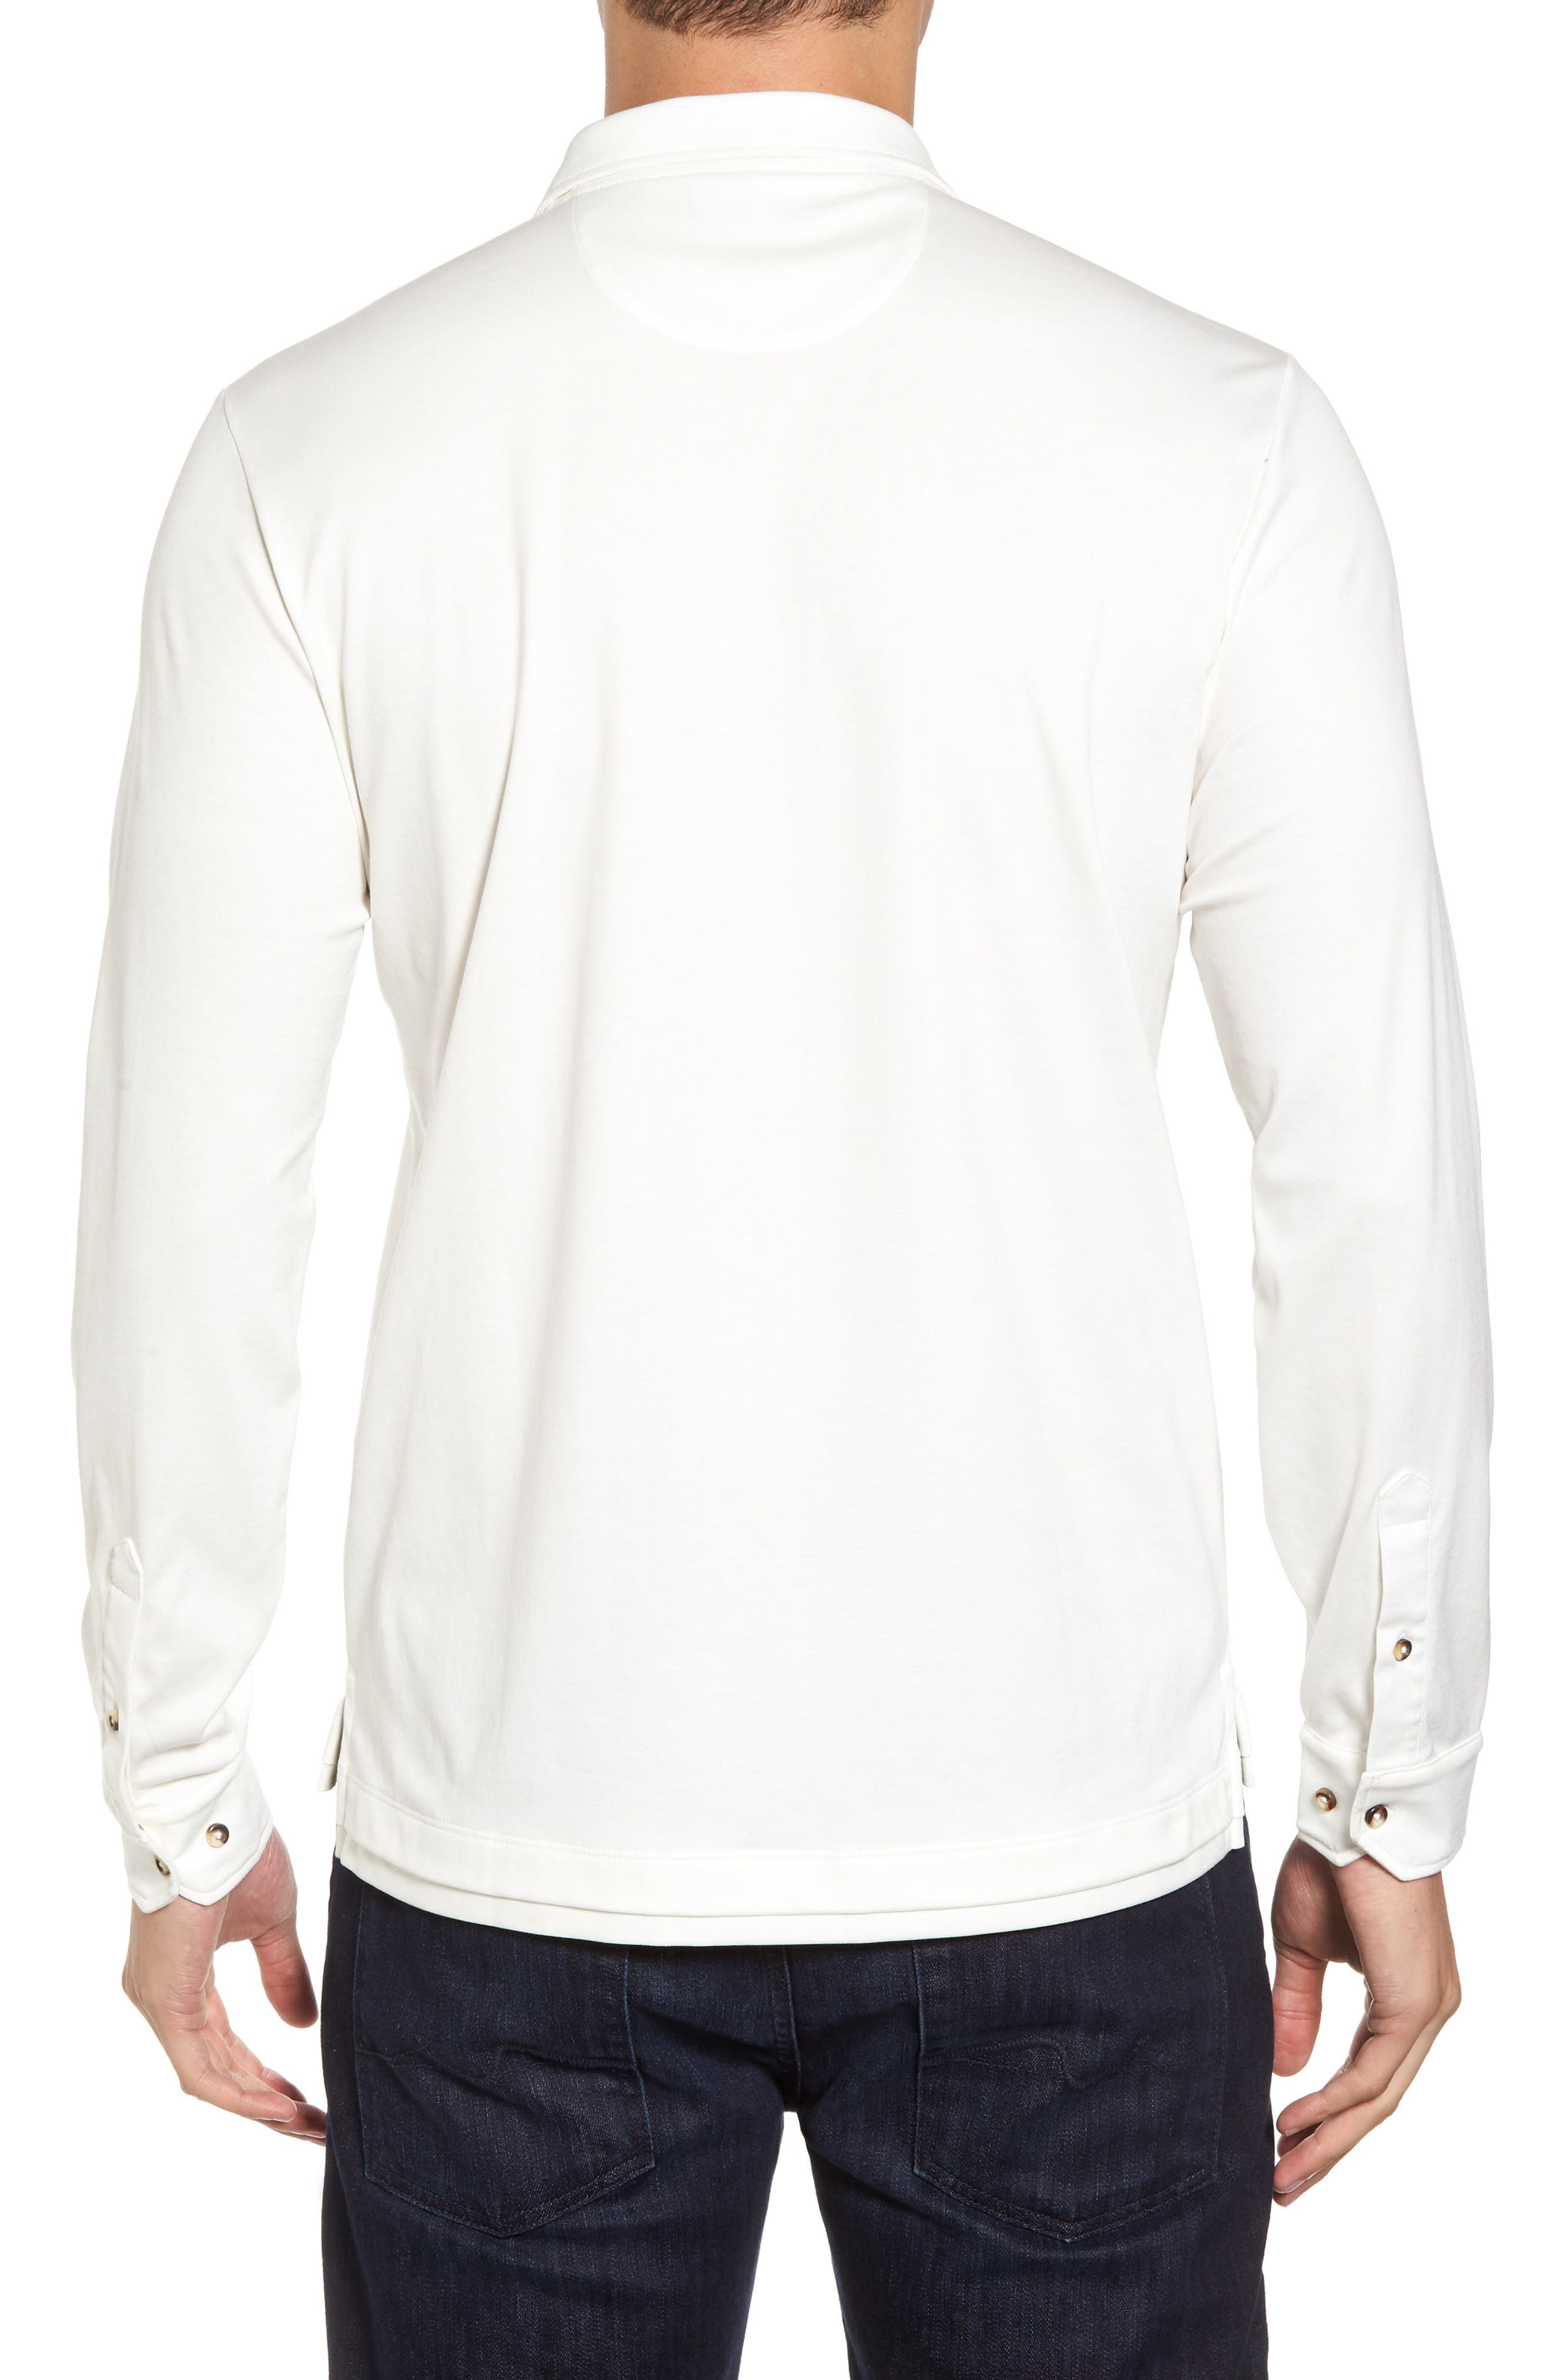 Interlock Polo,                             Alternate thumbnail 2, color,                             White